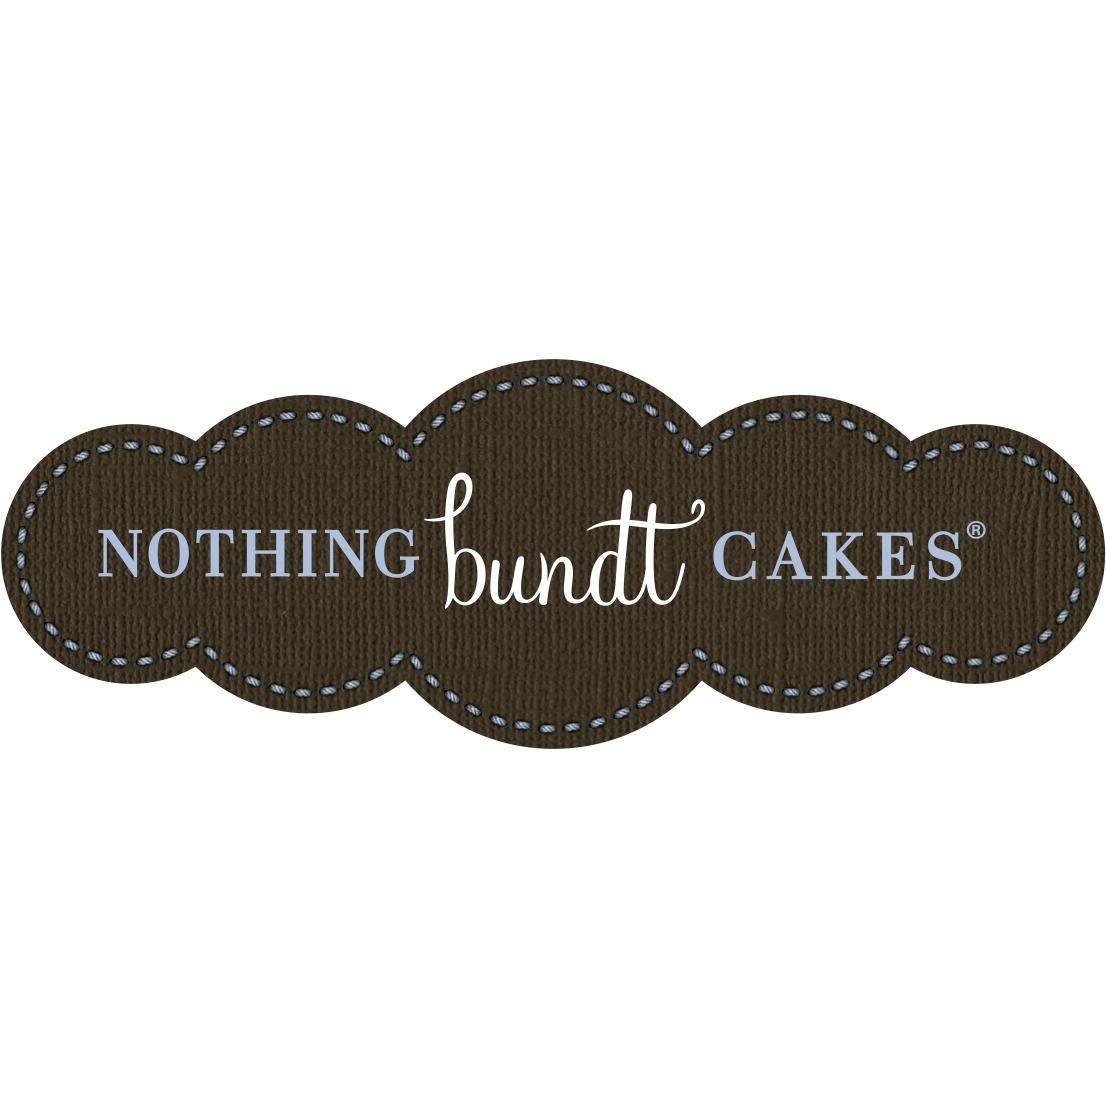 Nothing Bundt Cakes image 7